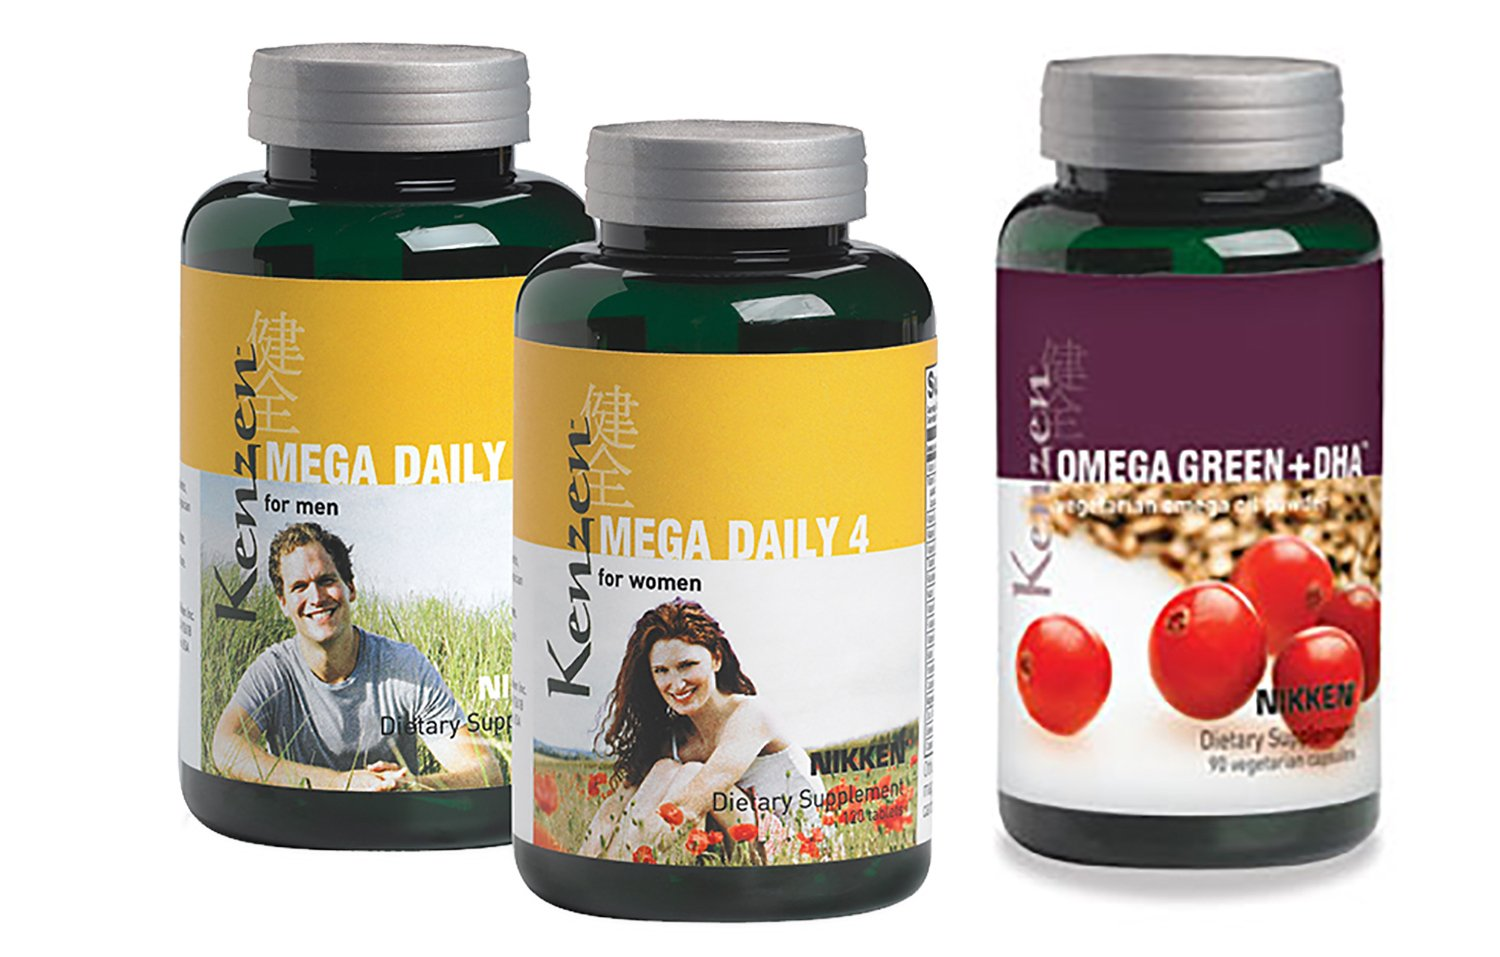 Nikken Kenzen Mega Daily 4  and Omega Green + DHA, Help Support a Healthy Prostate, and Support Healthy Heart, Brain, Nerve and Eye Function (Men)